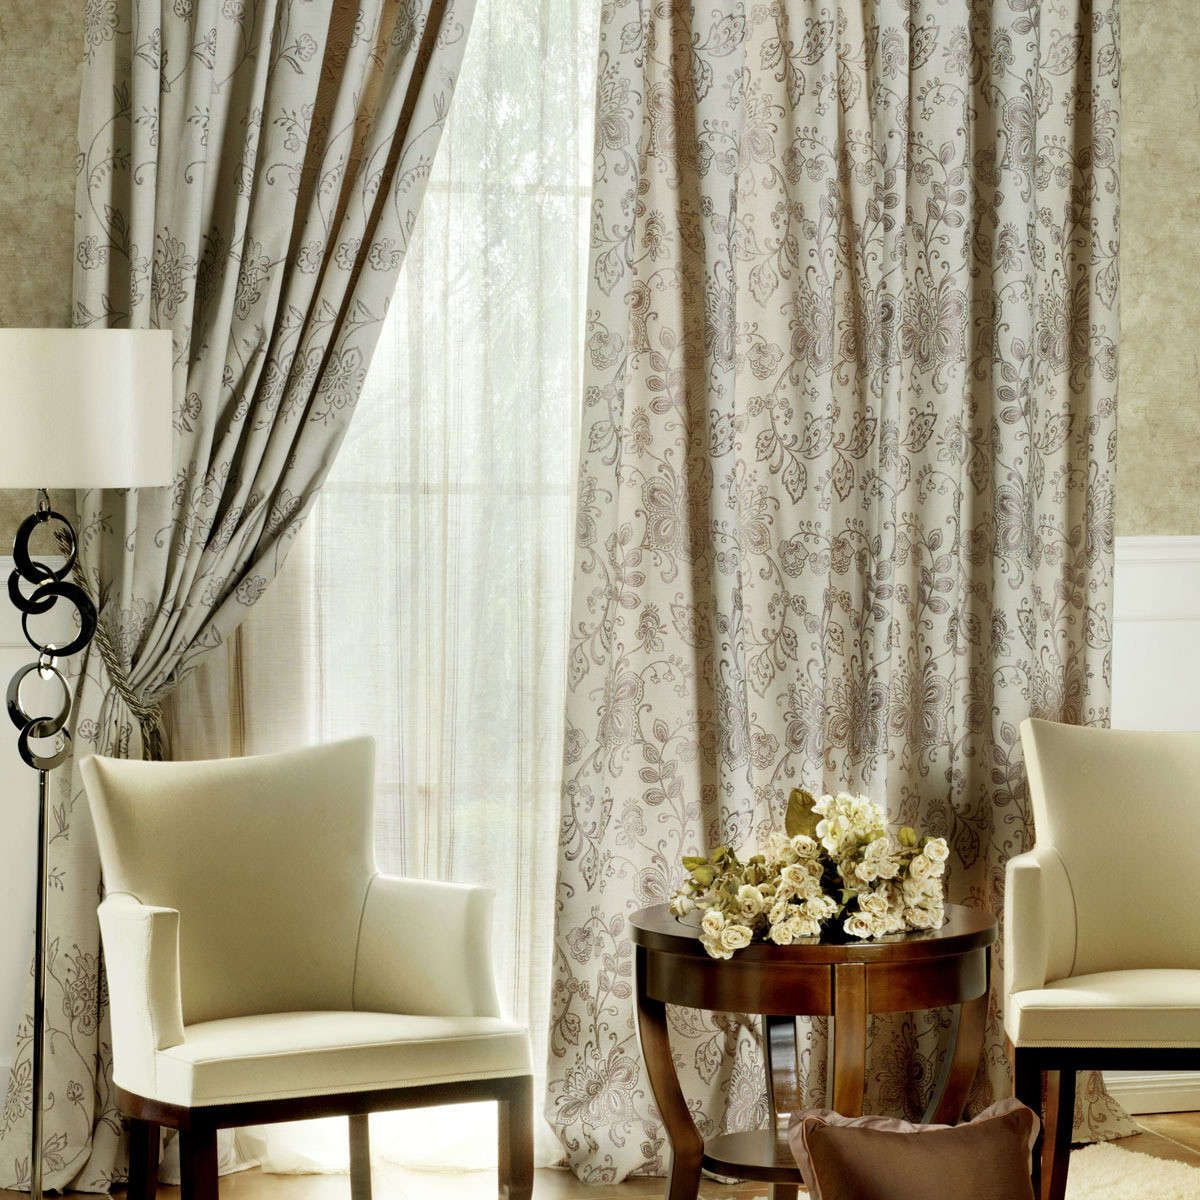 Living Room Curtain Designs Gorgeous Užuolaidos  Domus Lumina Užuolaidos  Pinterest  House Inspiration